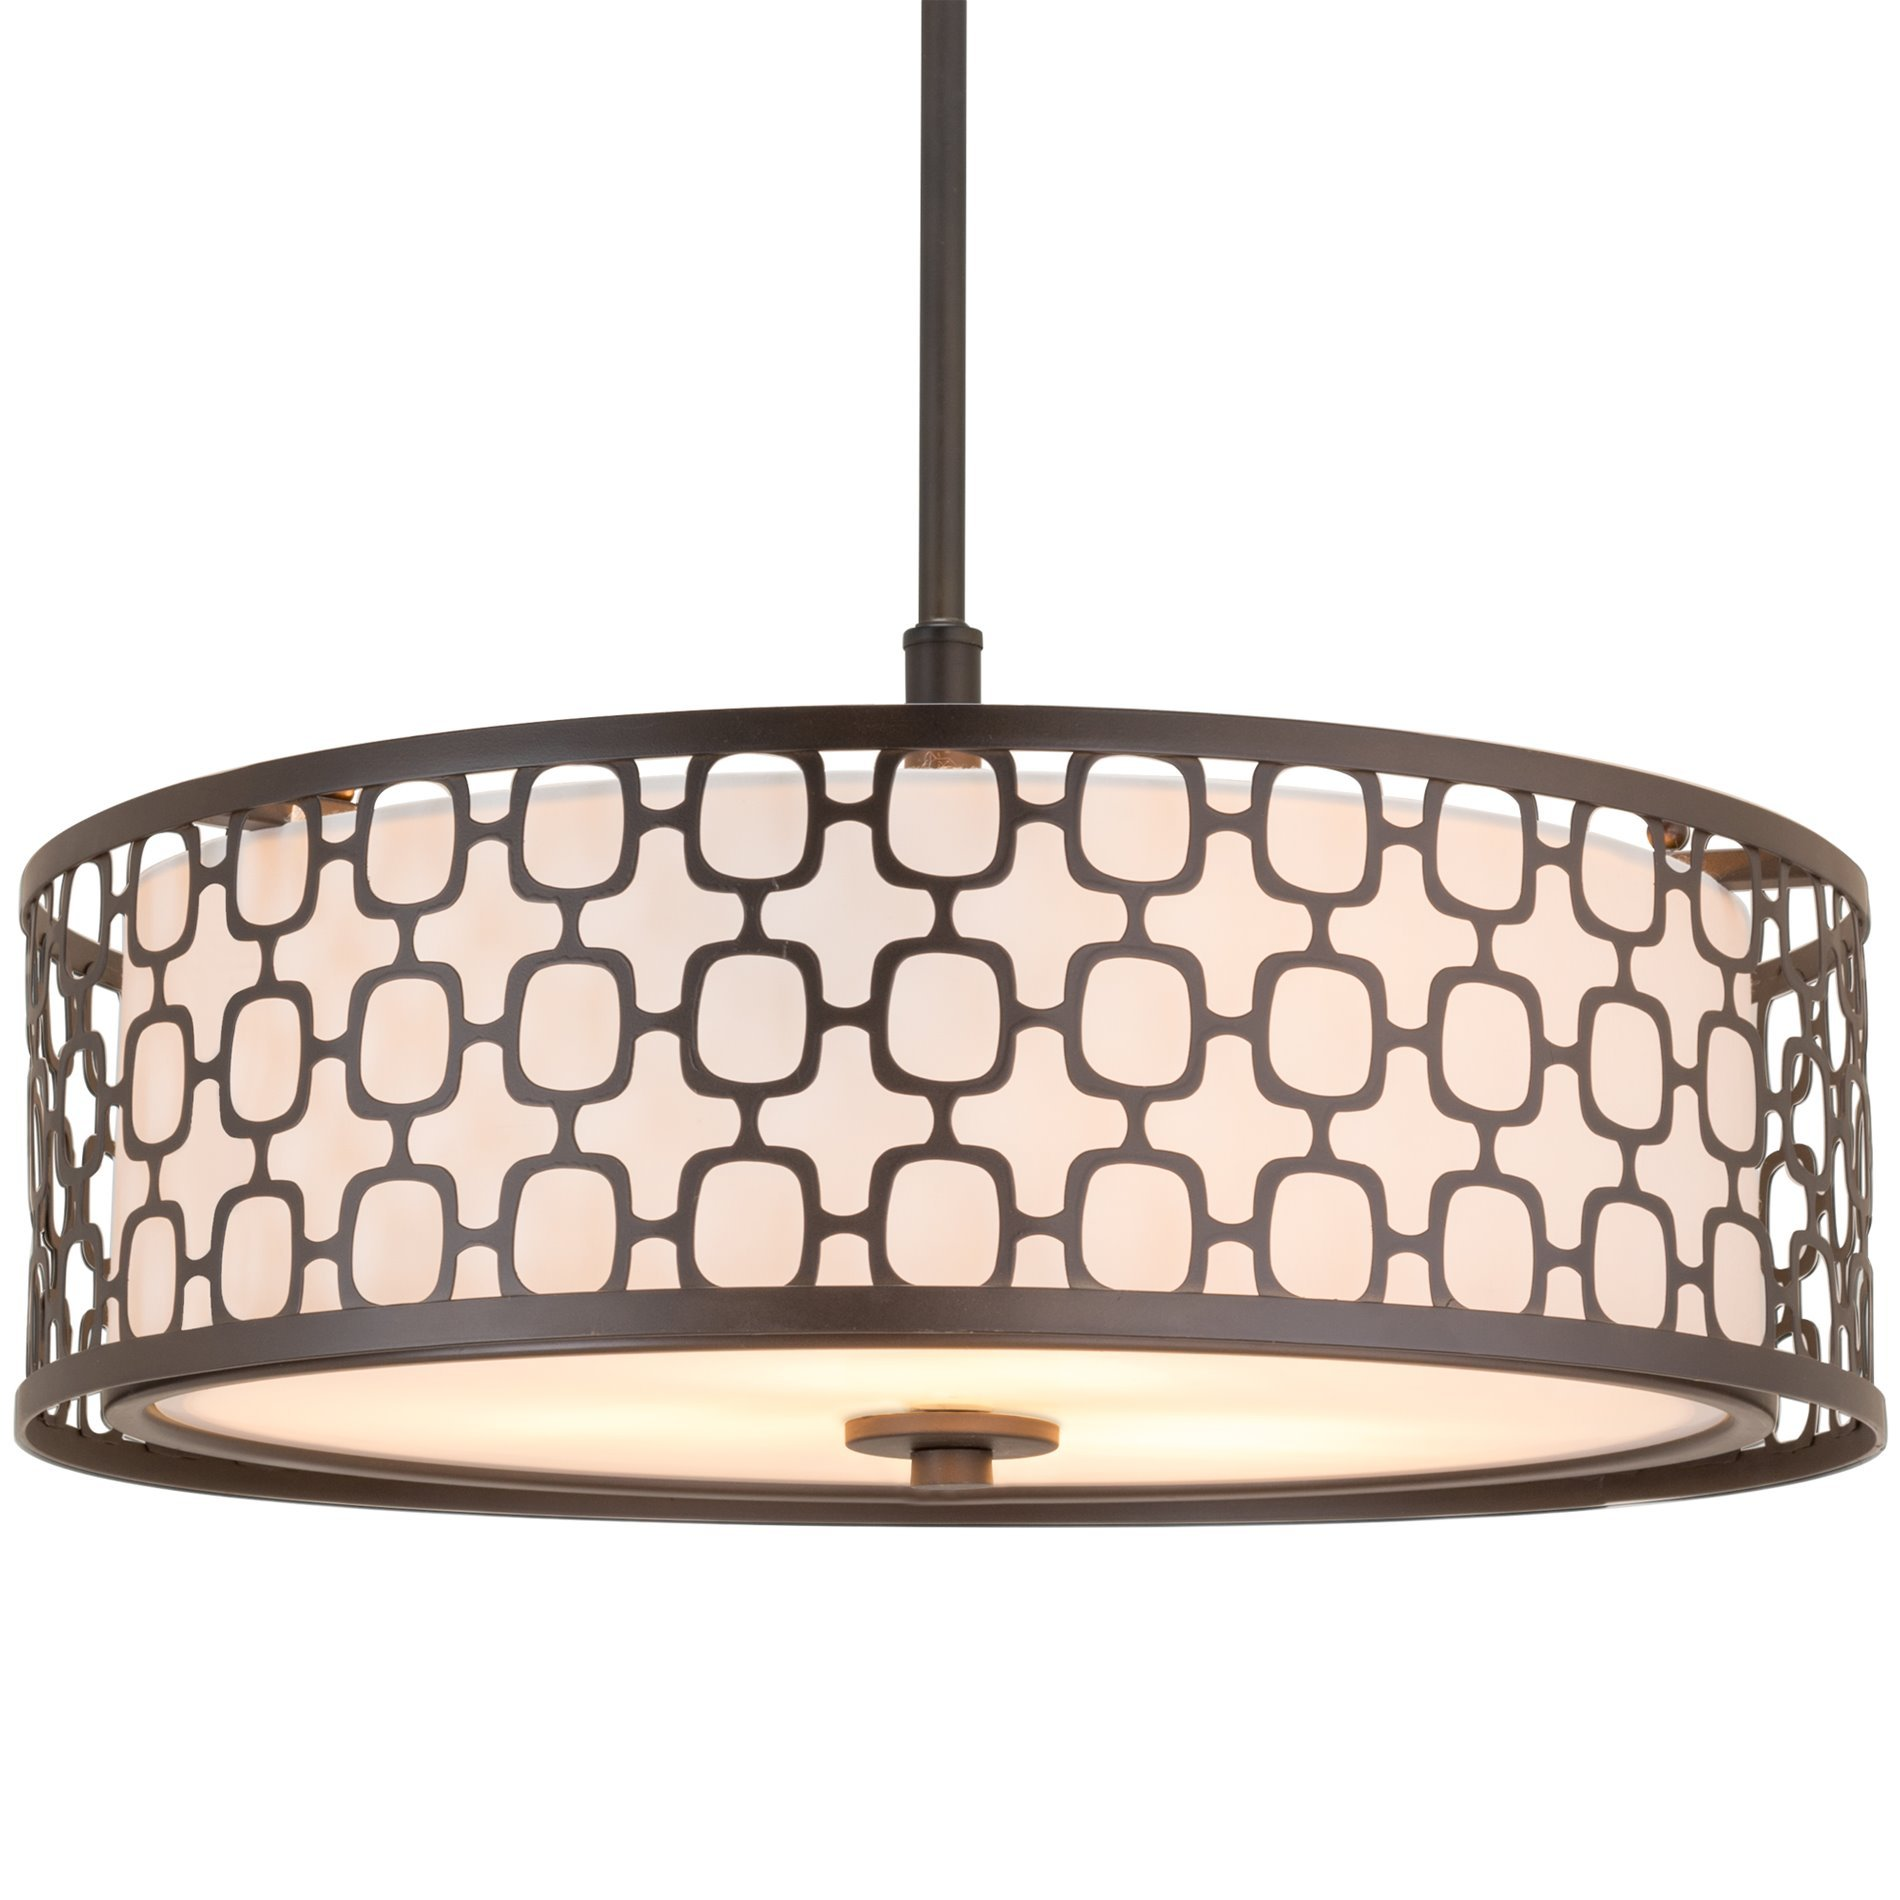 "Revel Harper 18"" 3 Light Double Drum Chandelier w Lattice Outer"